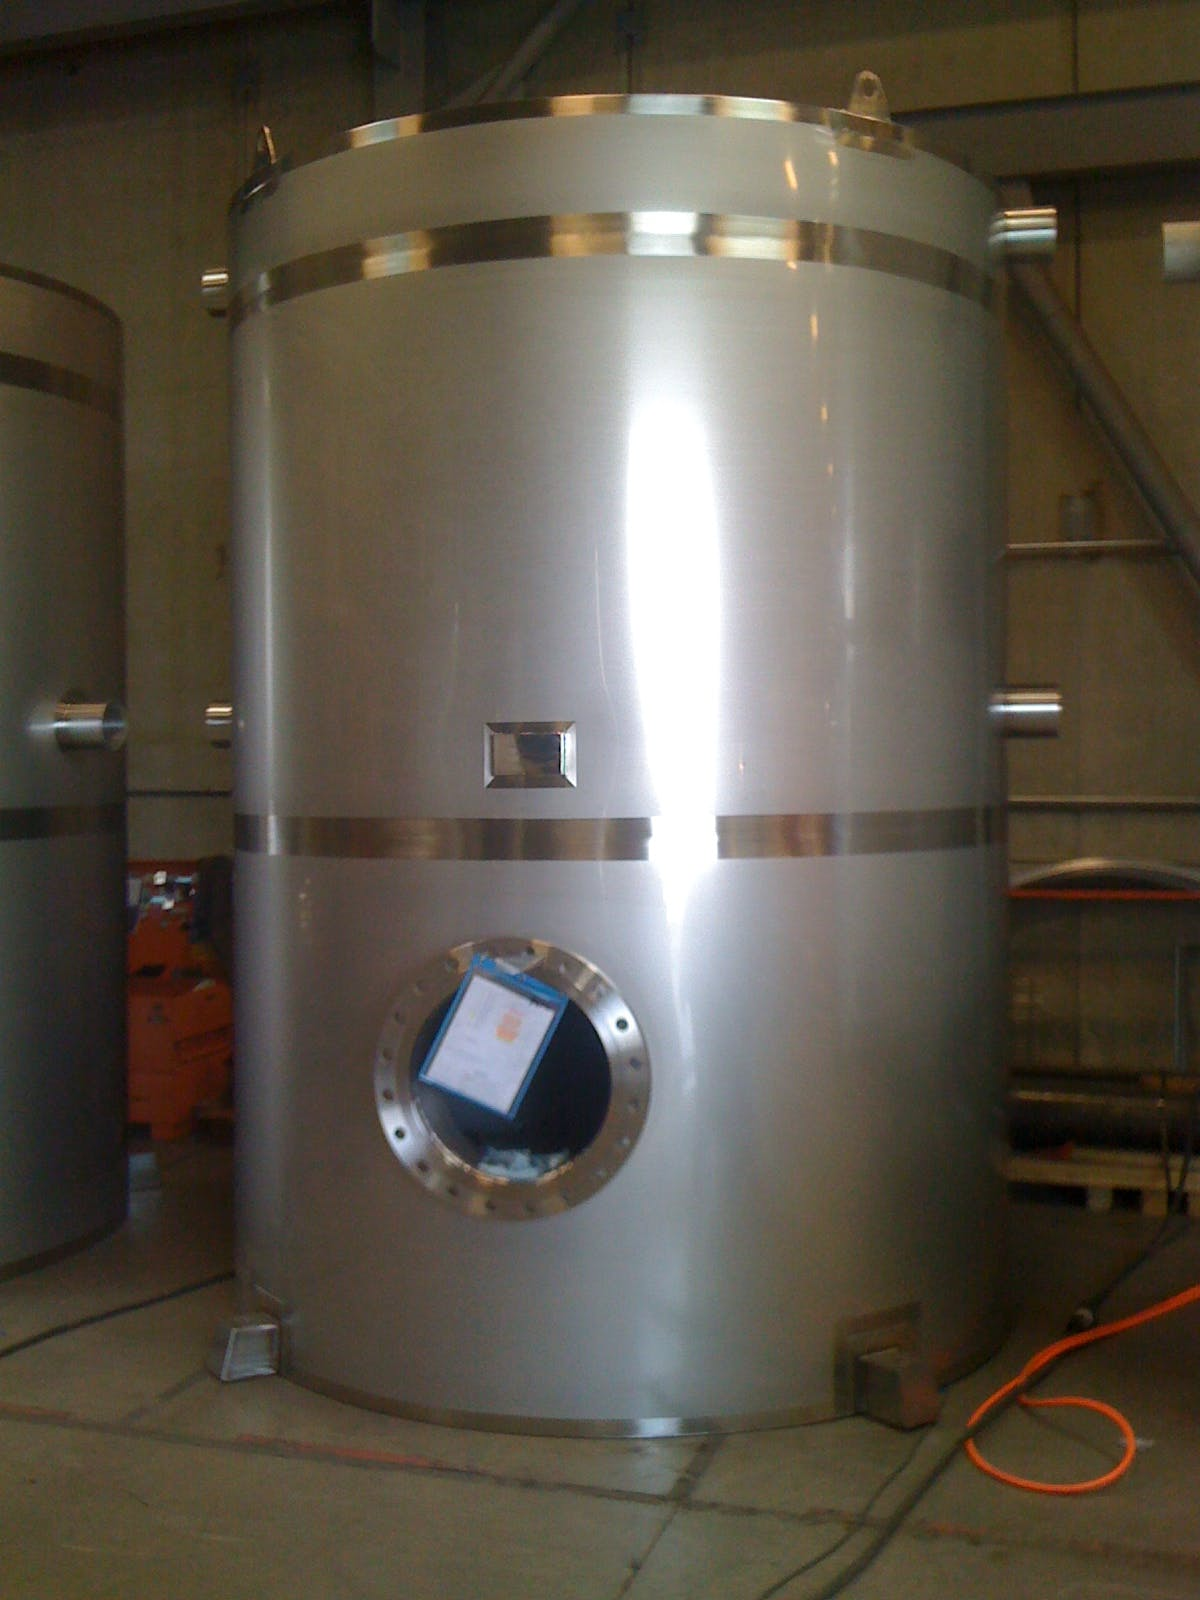 Typical single shell stainless steel drinking water holding tank.  Water tank sold by Hood-EIC, LLC Tank Division